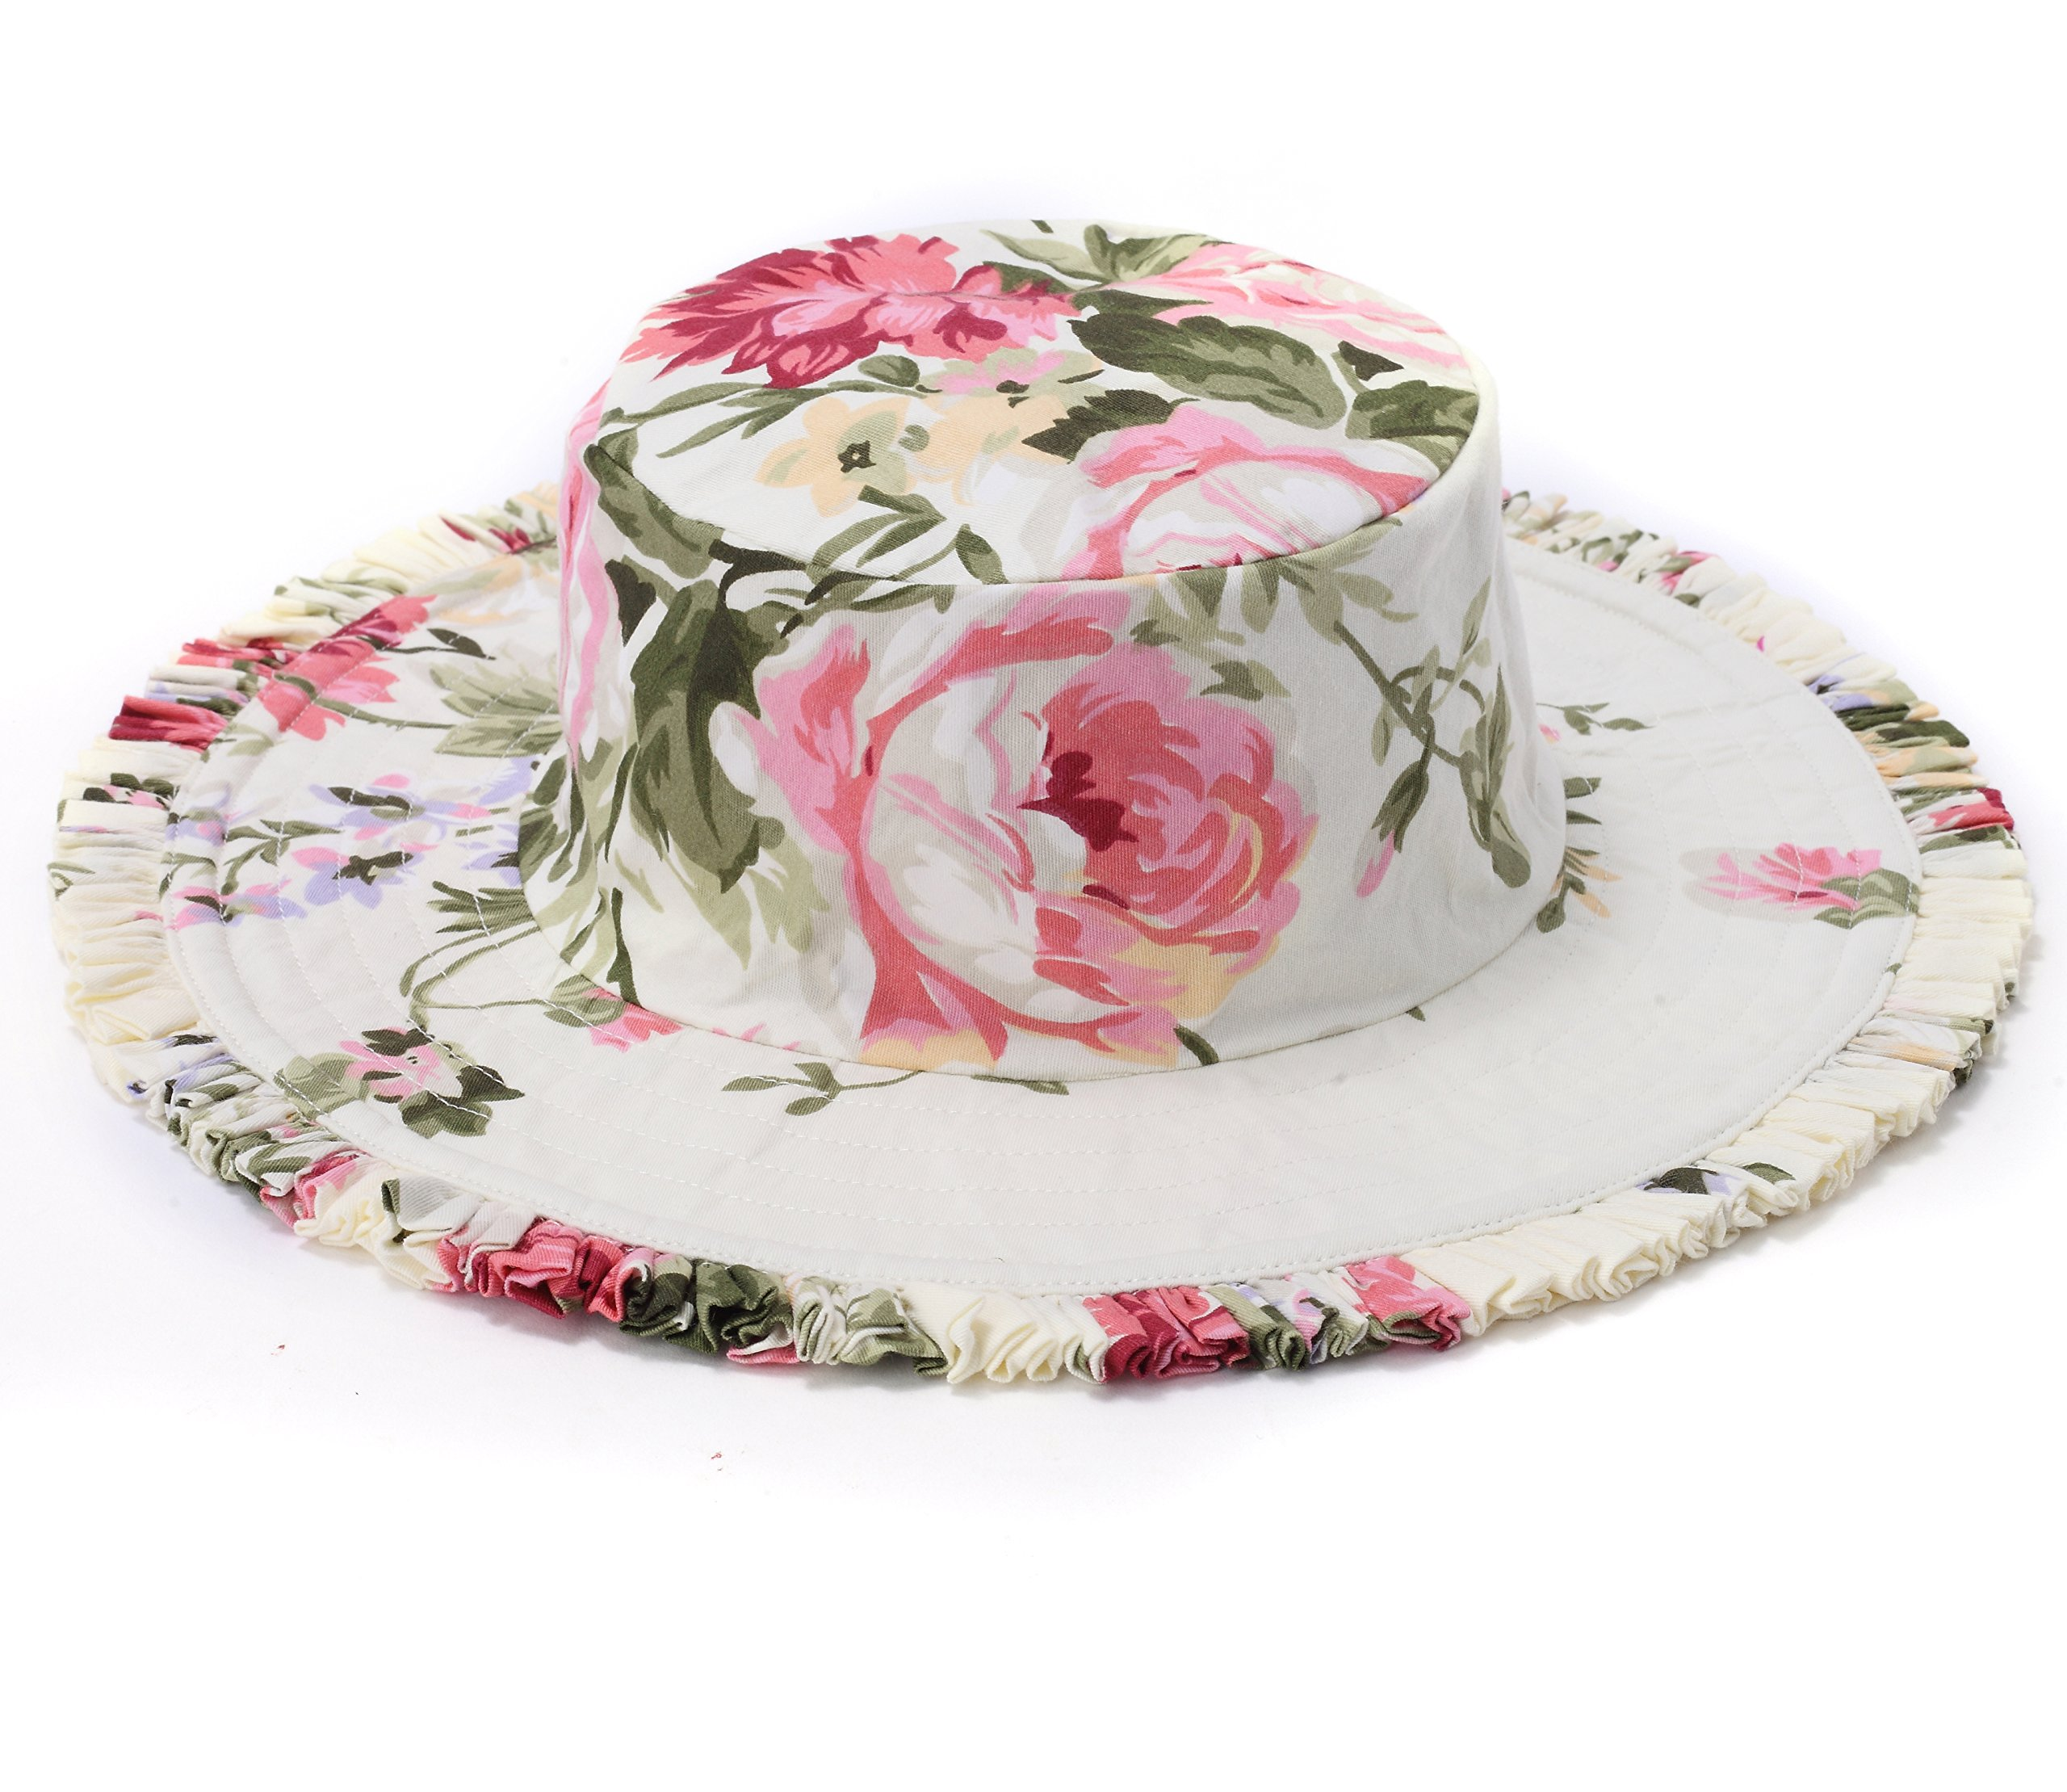 Flofallzique Sun Hat Toddler Girls Summer Outdoor Protection Hat Floral Cotton Hat for 1-8 Years Old Girls (S(1-3 Years Old), Cream